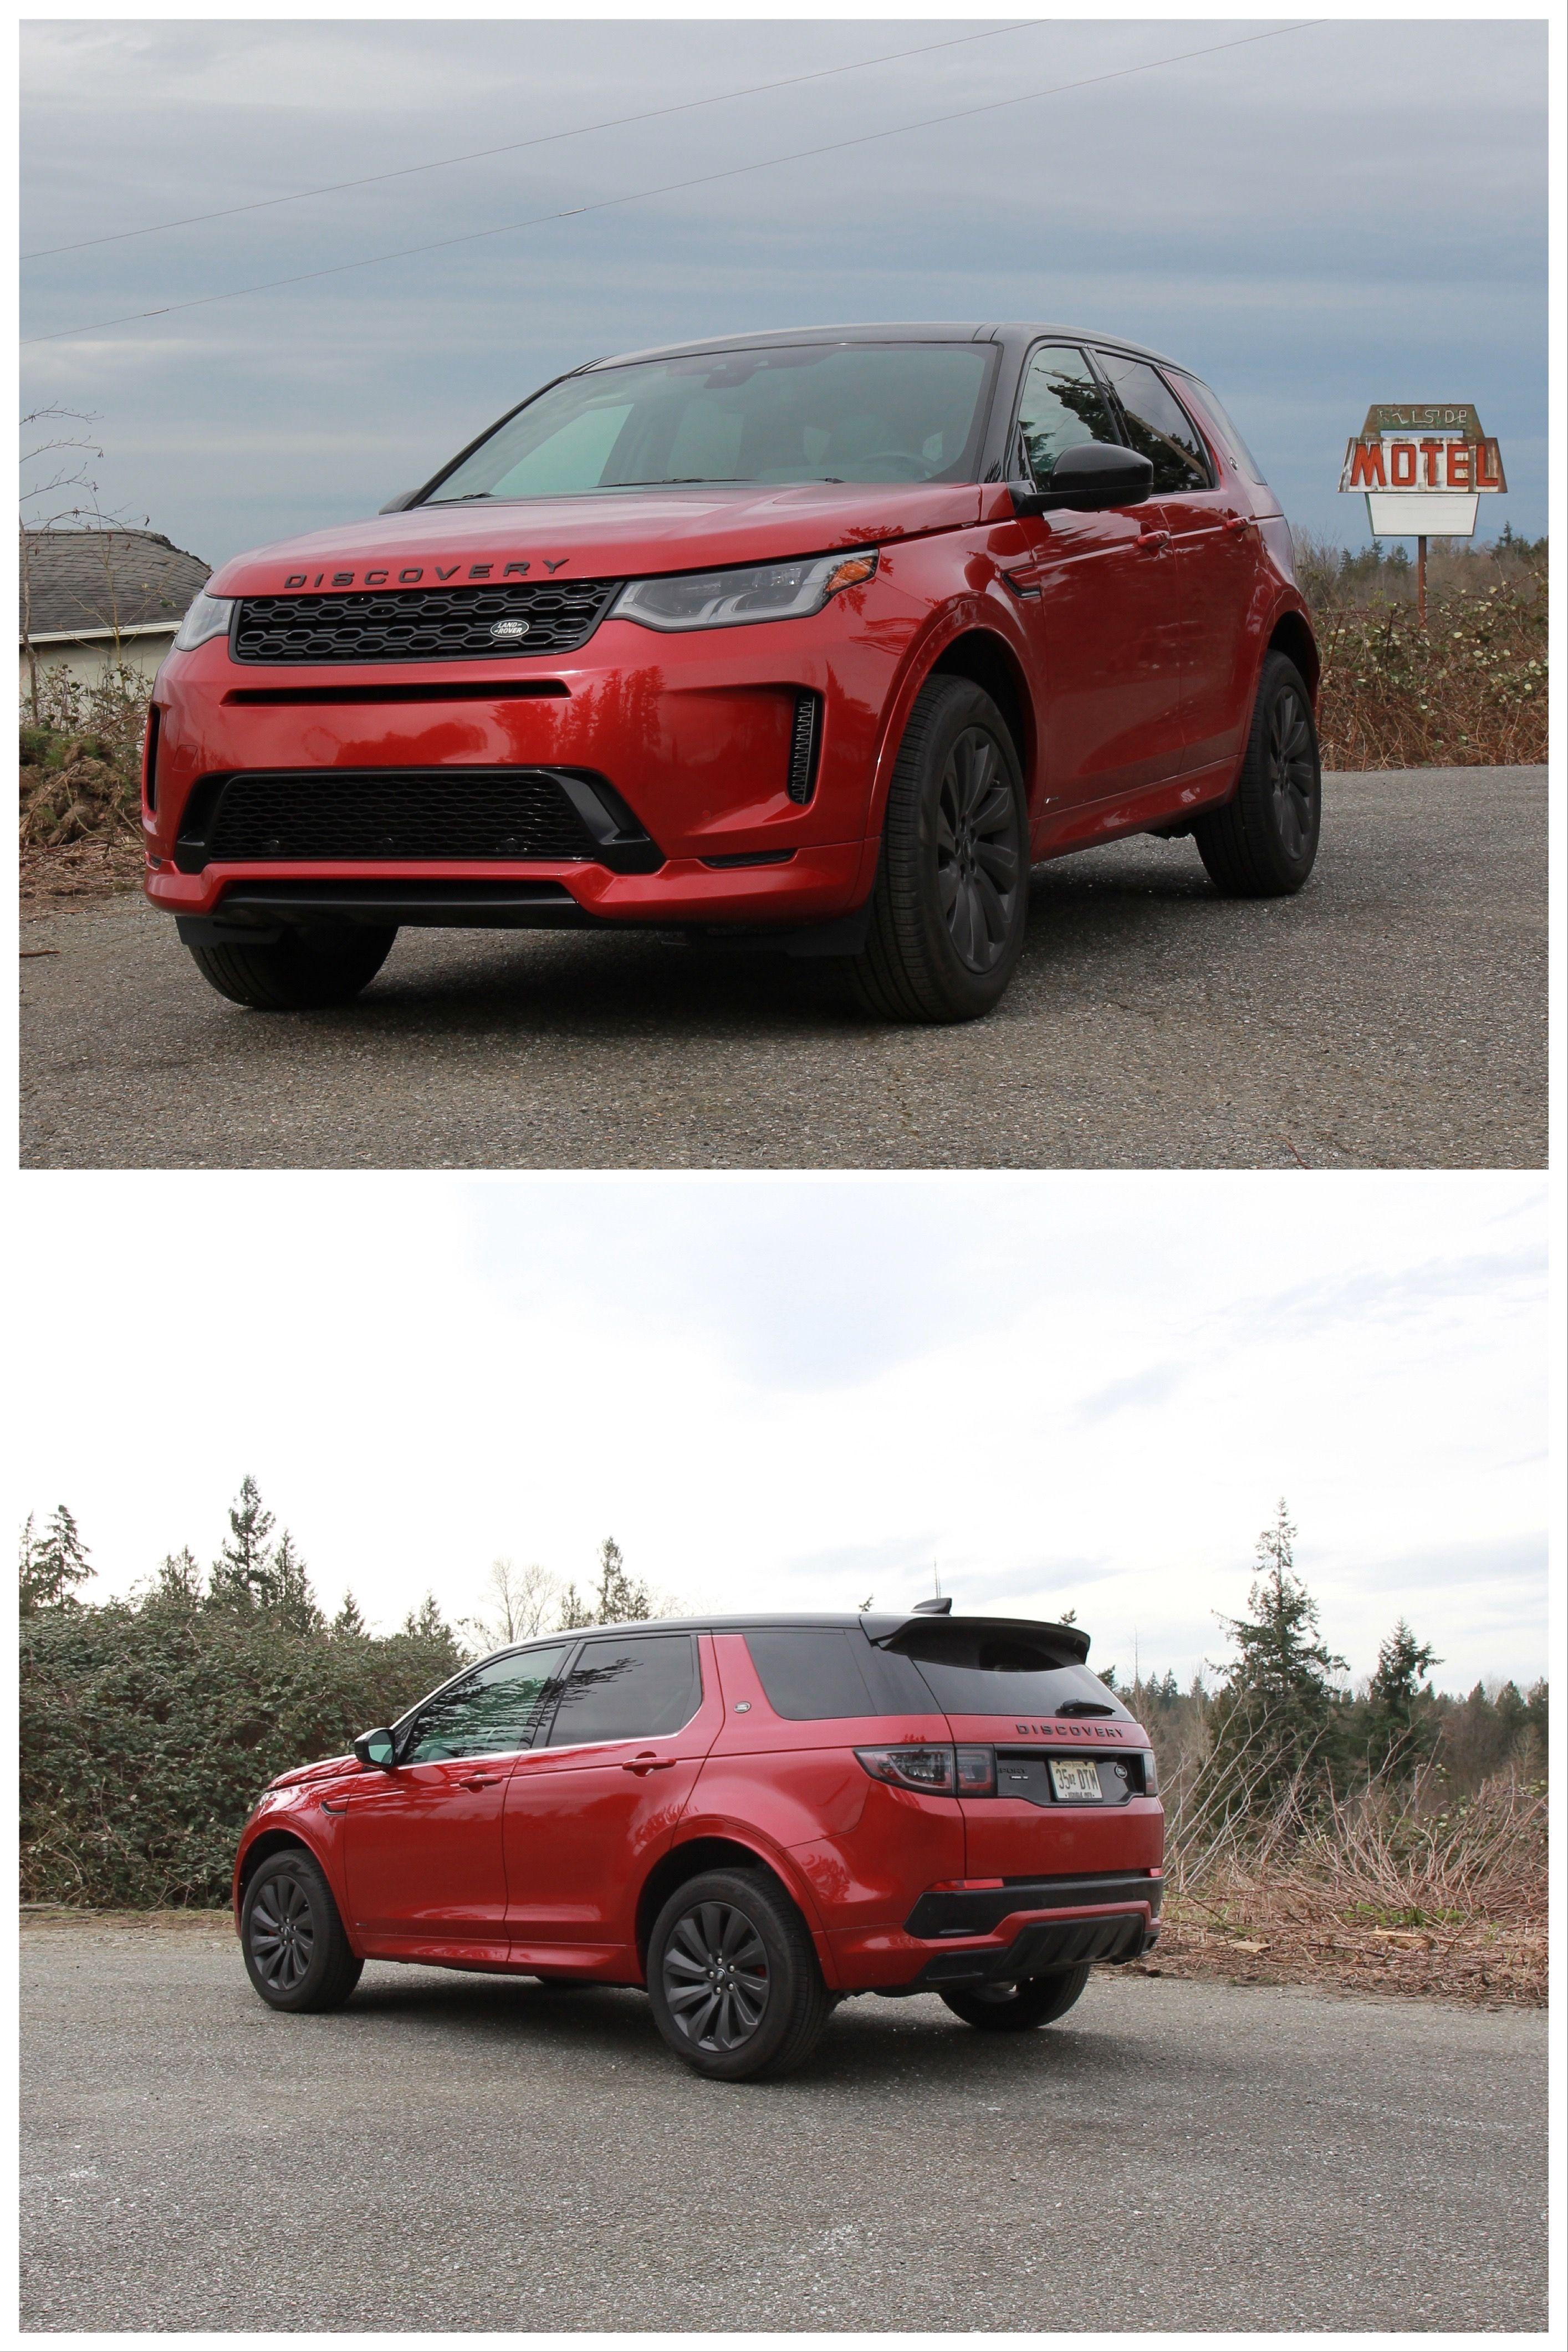 2020 Land Rover Discovery Sport Review, Photos